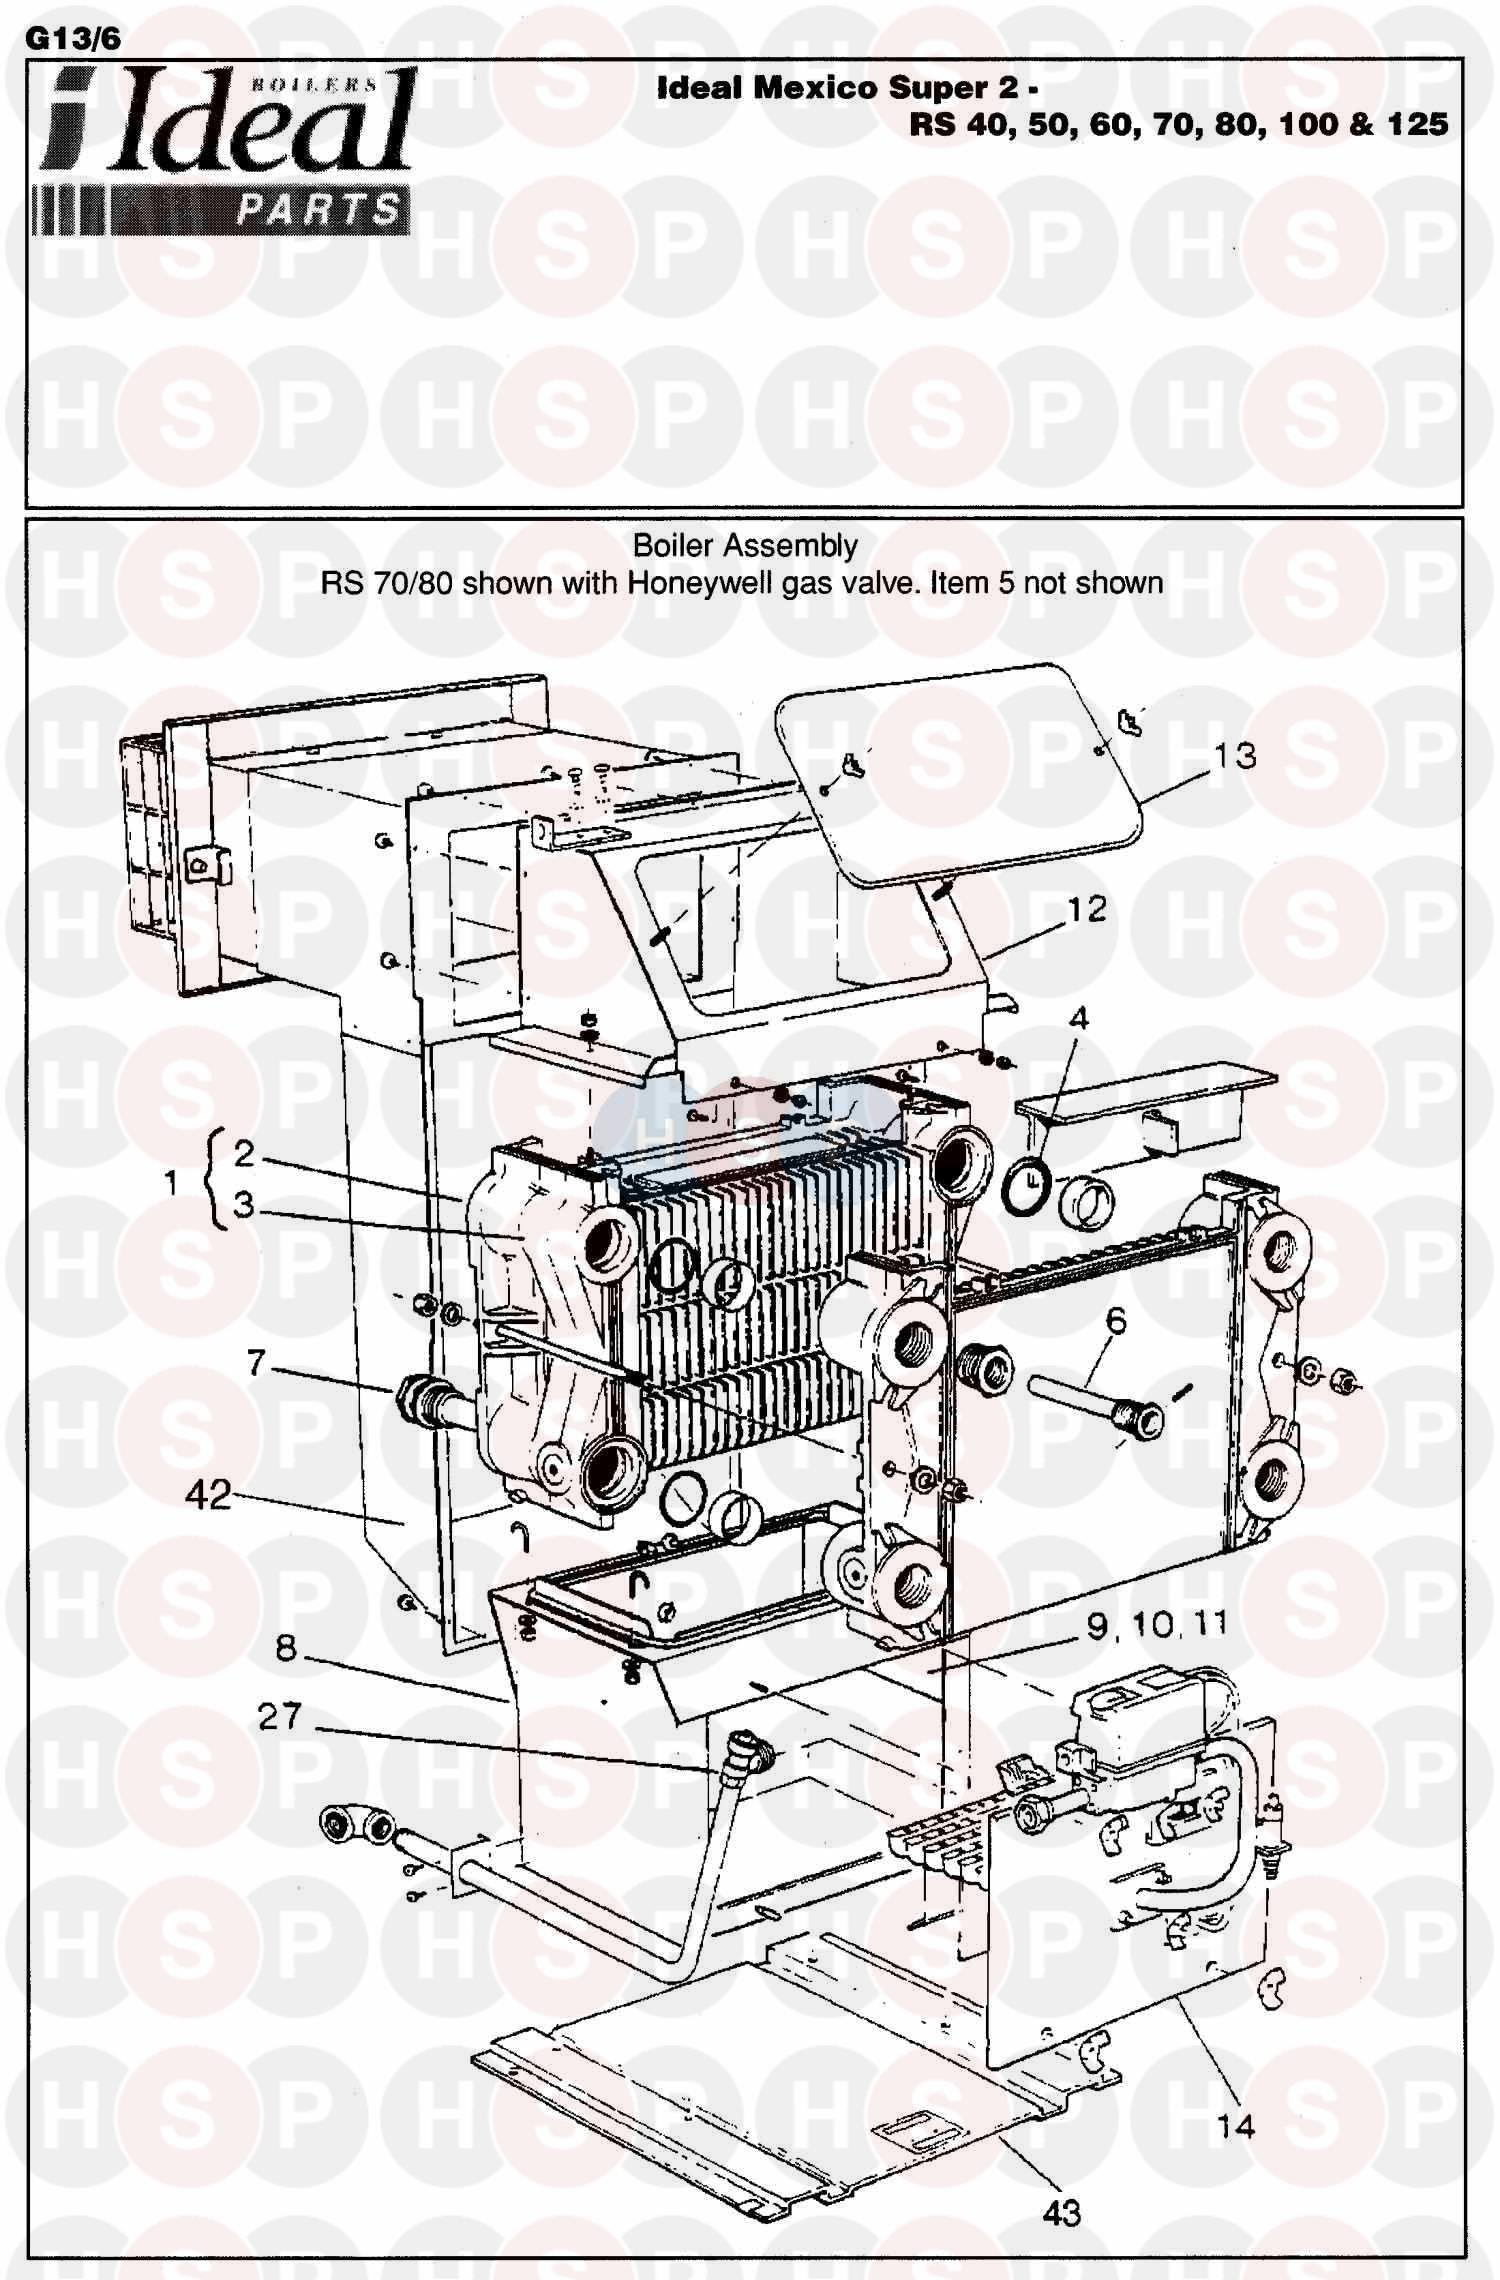 Ideal MEXICO SUPER 2 RS 60 Appliance Diagram (BOILER